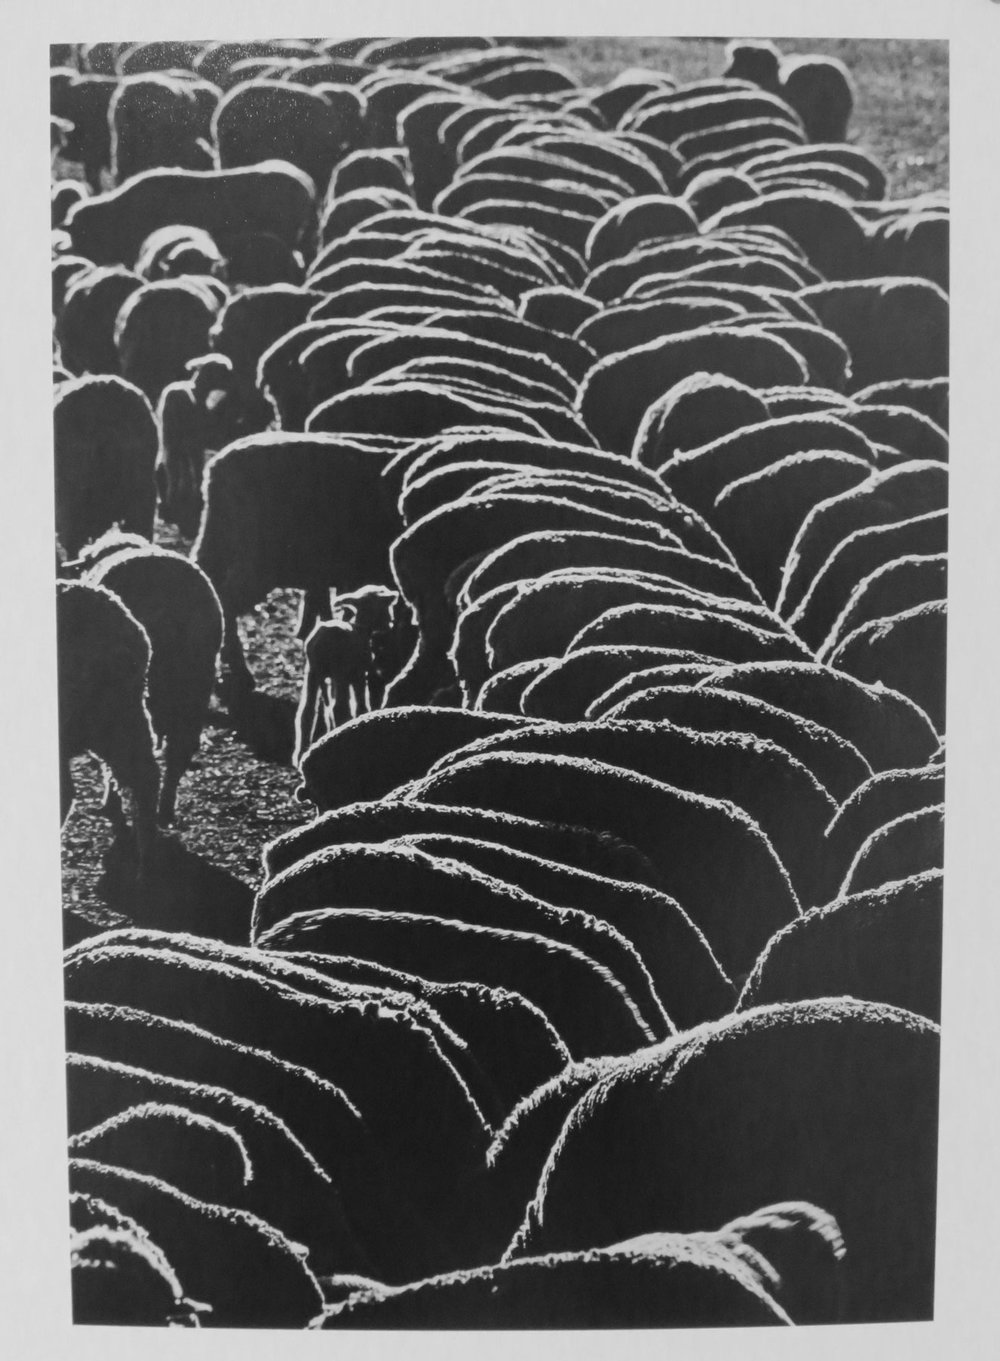 38. Richard Woldendorp, 'Hand-fed Sheep, Wheatbelt, WA', BW375, taken in c.1970, printed in 2018